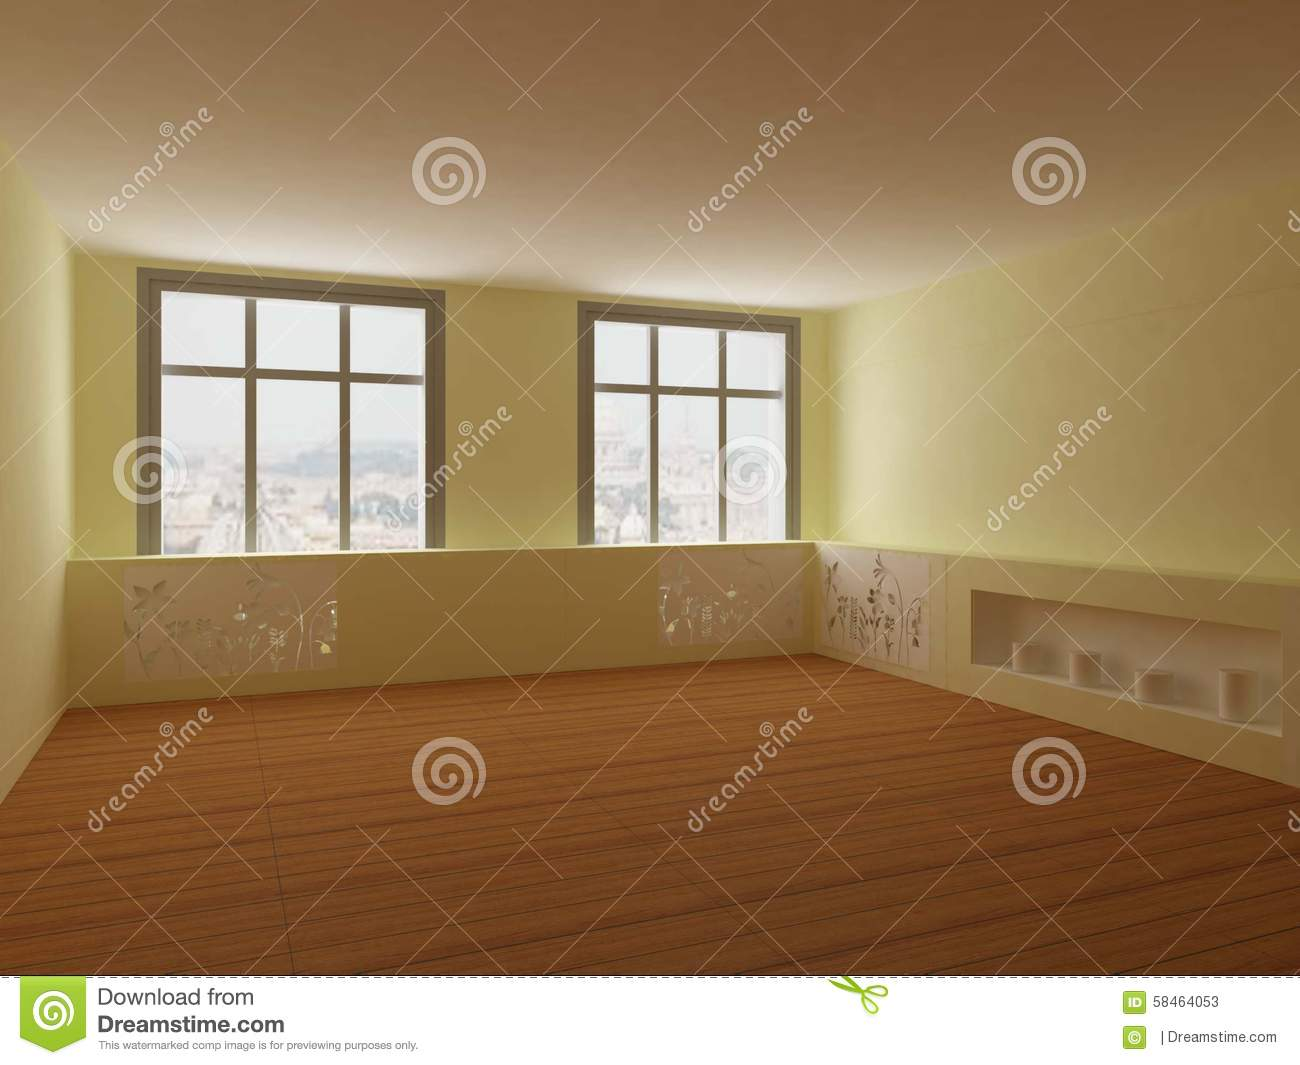 Fitness room stock illustration image